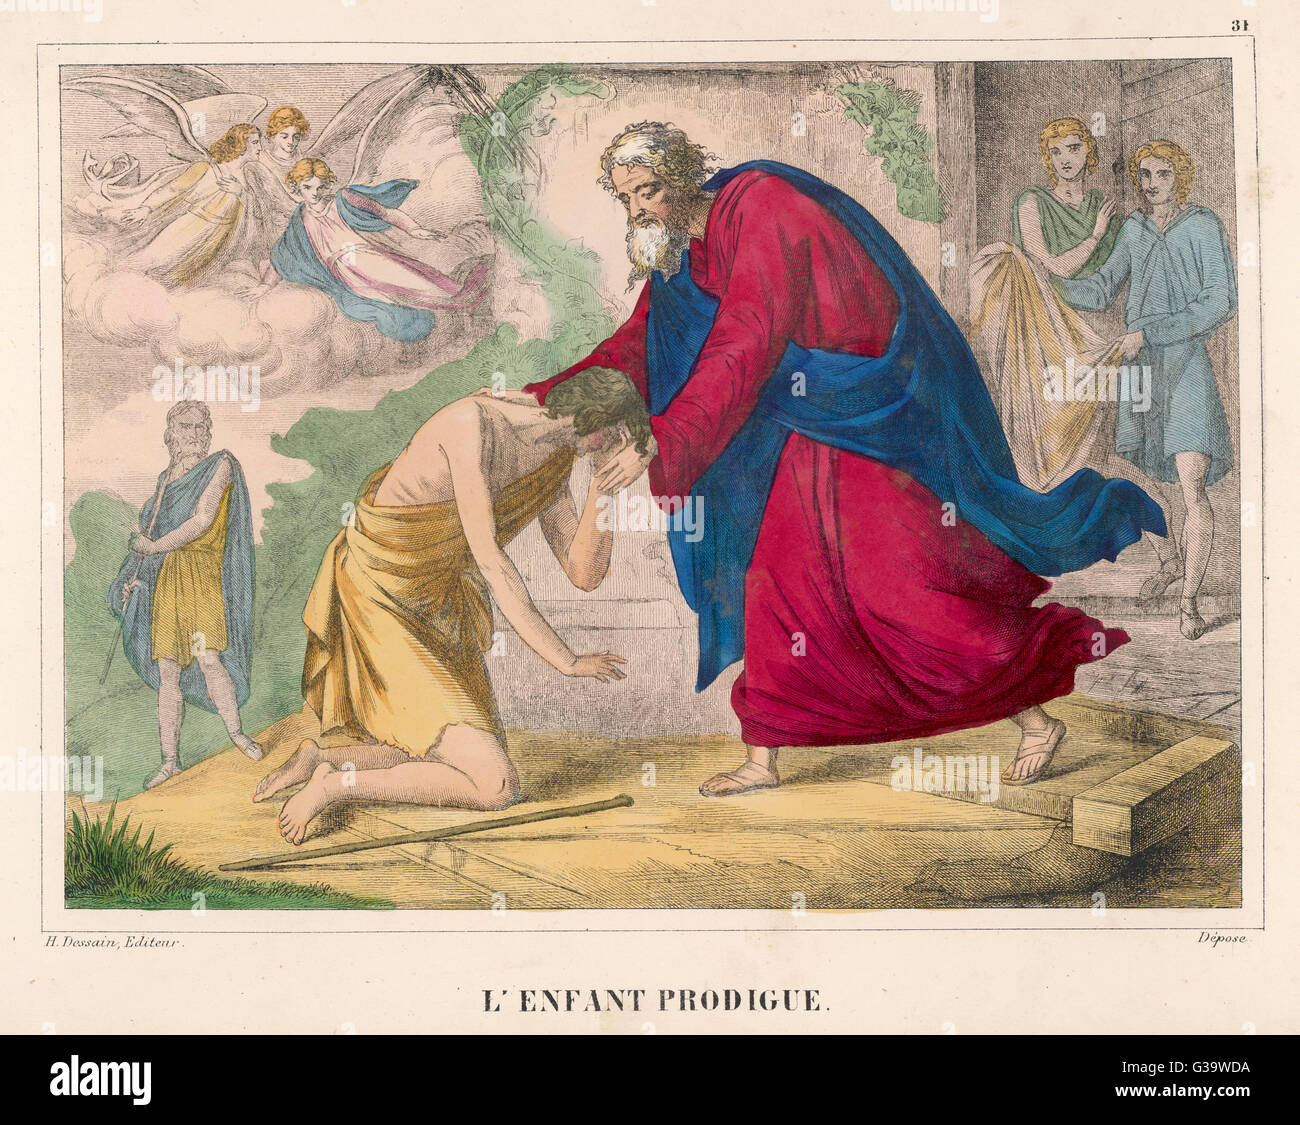 The parable of 'The Prodigal  Son', welcomed home by his  father - Stock Image